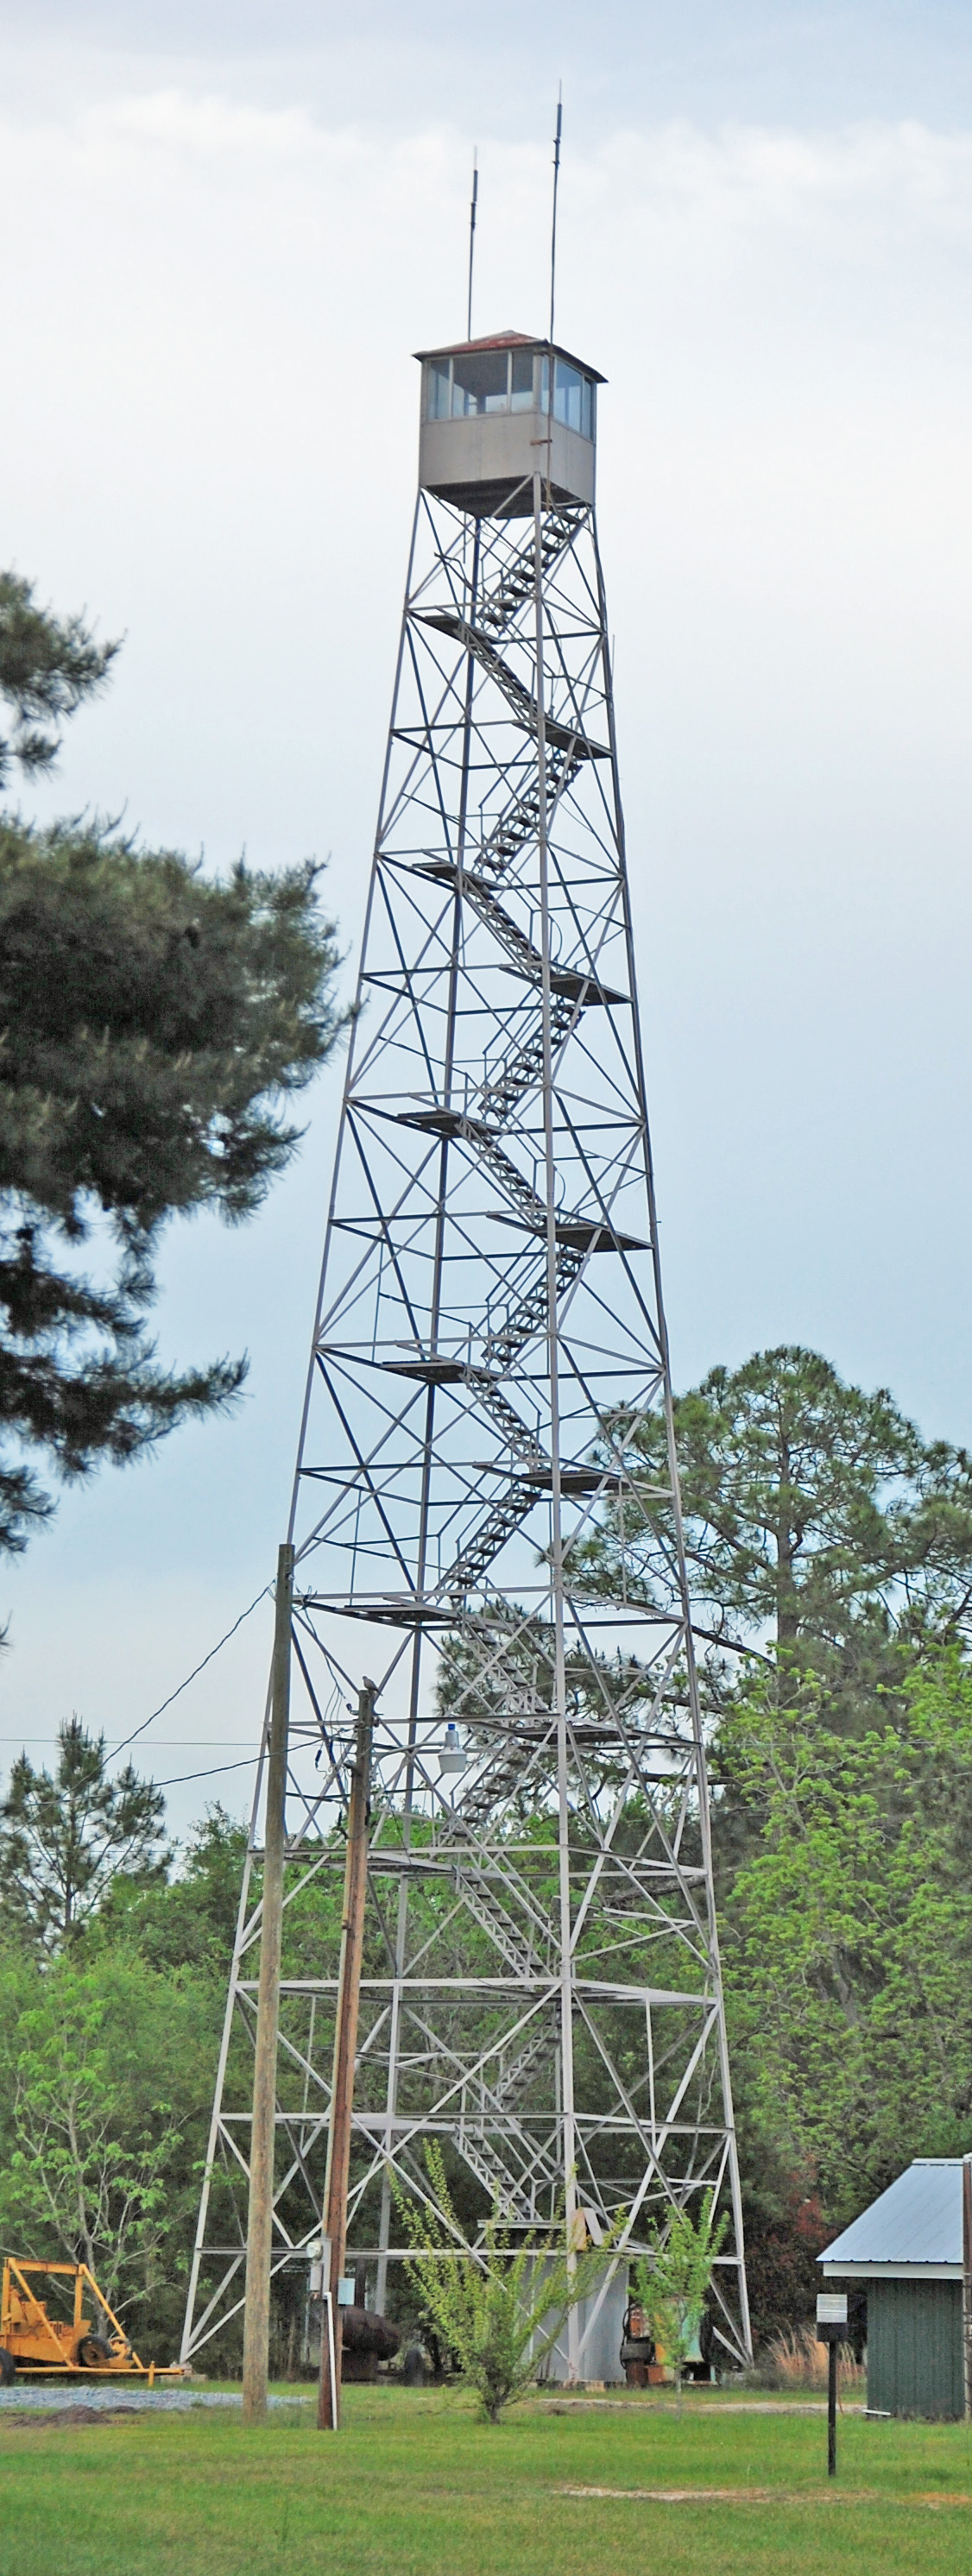 filefire lookout tower in south georgia usajpg wikipedia